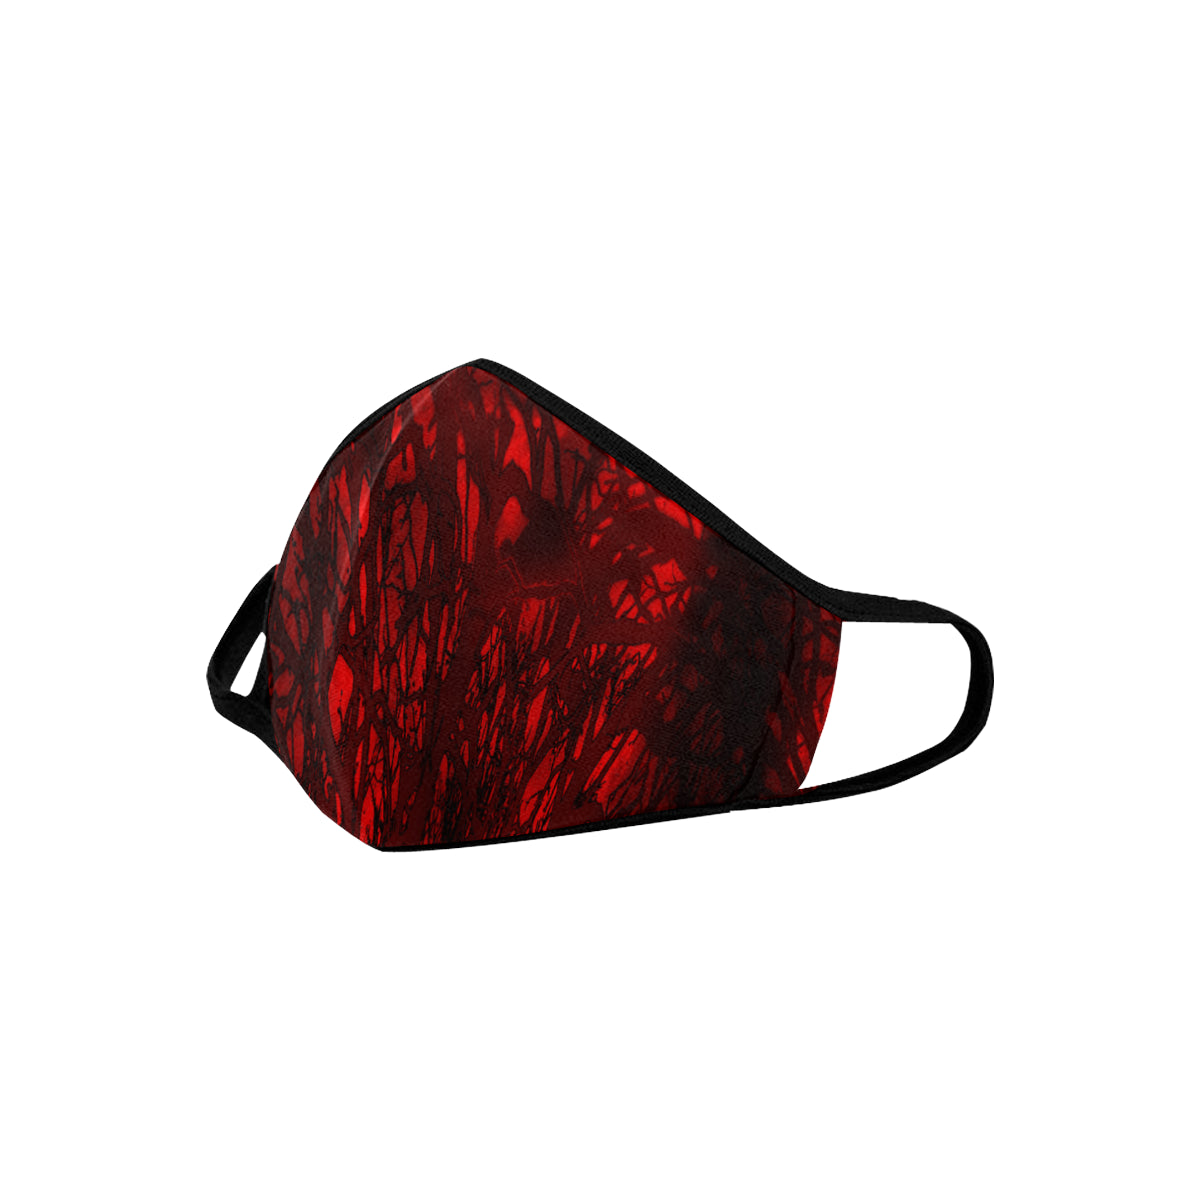 Red Carnage Blood Vein Goth Vampire Mouth Mask